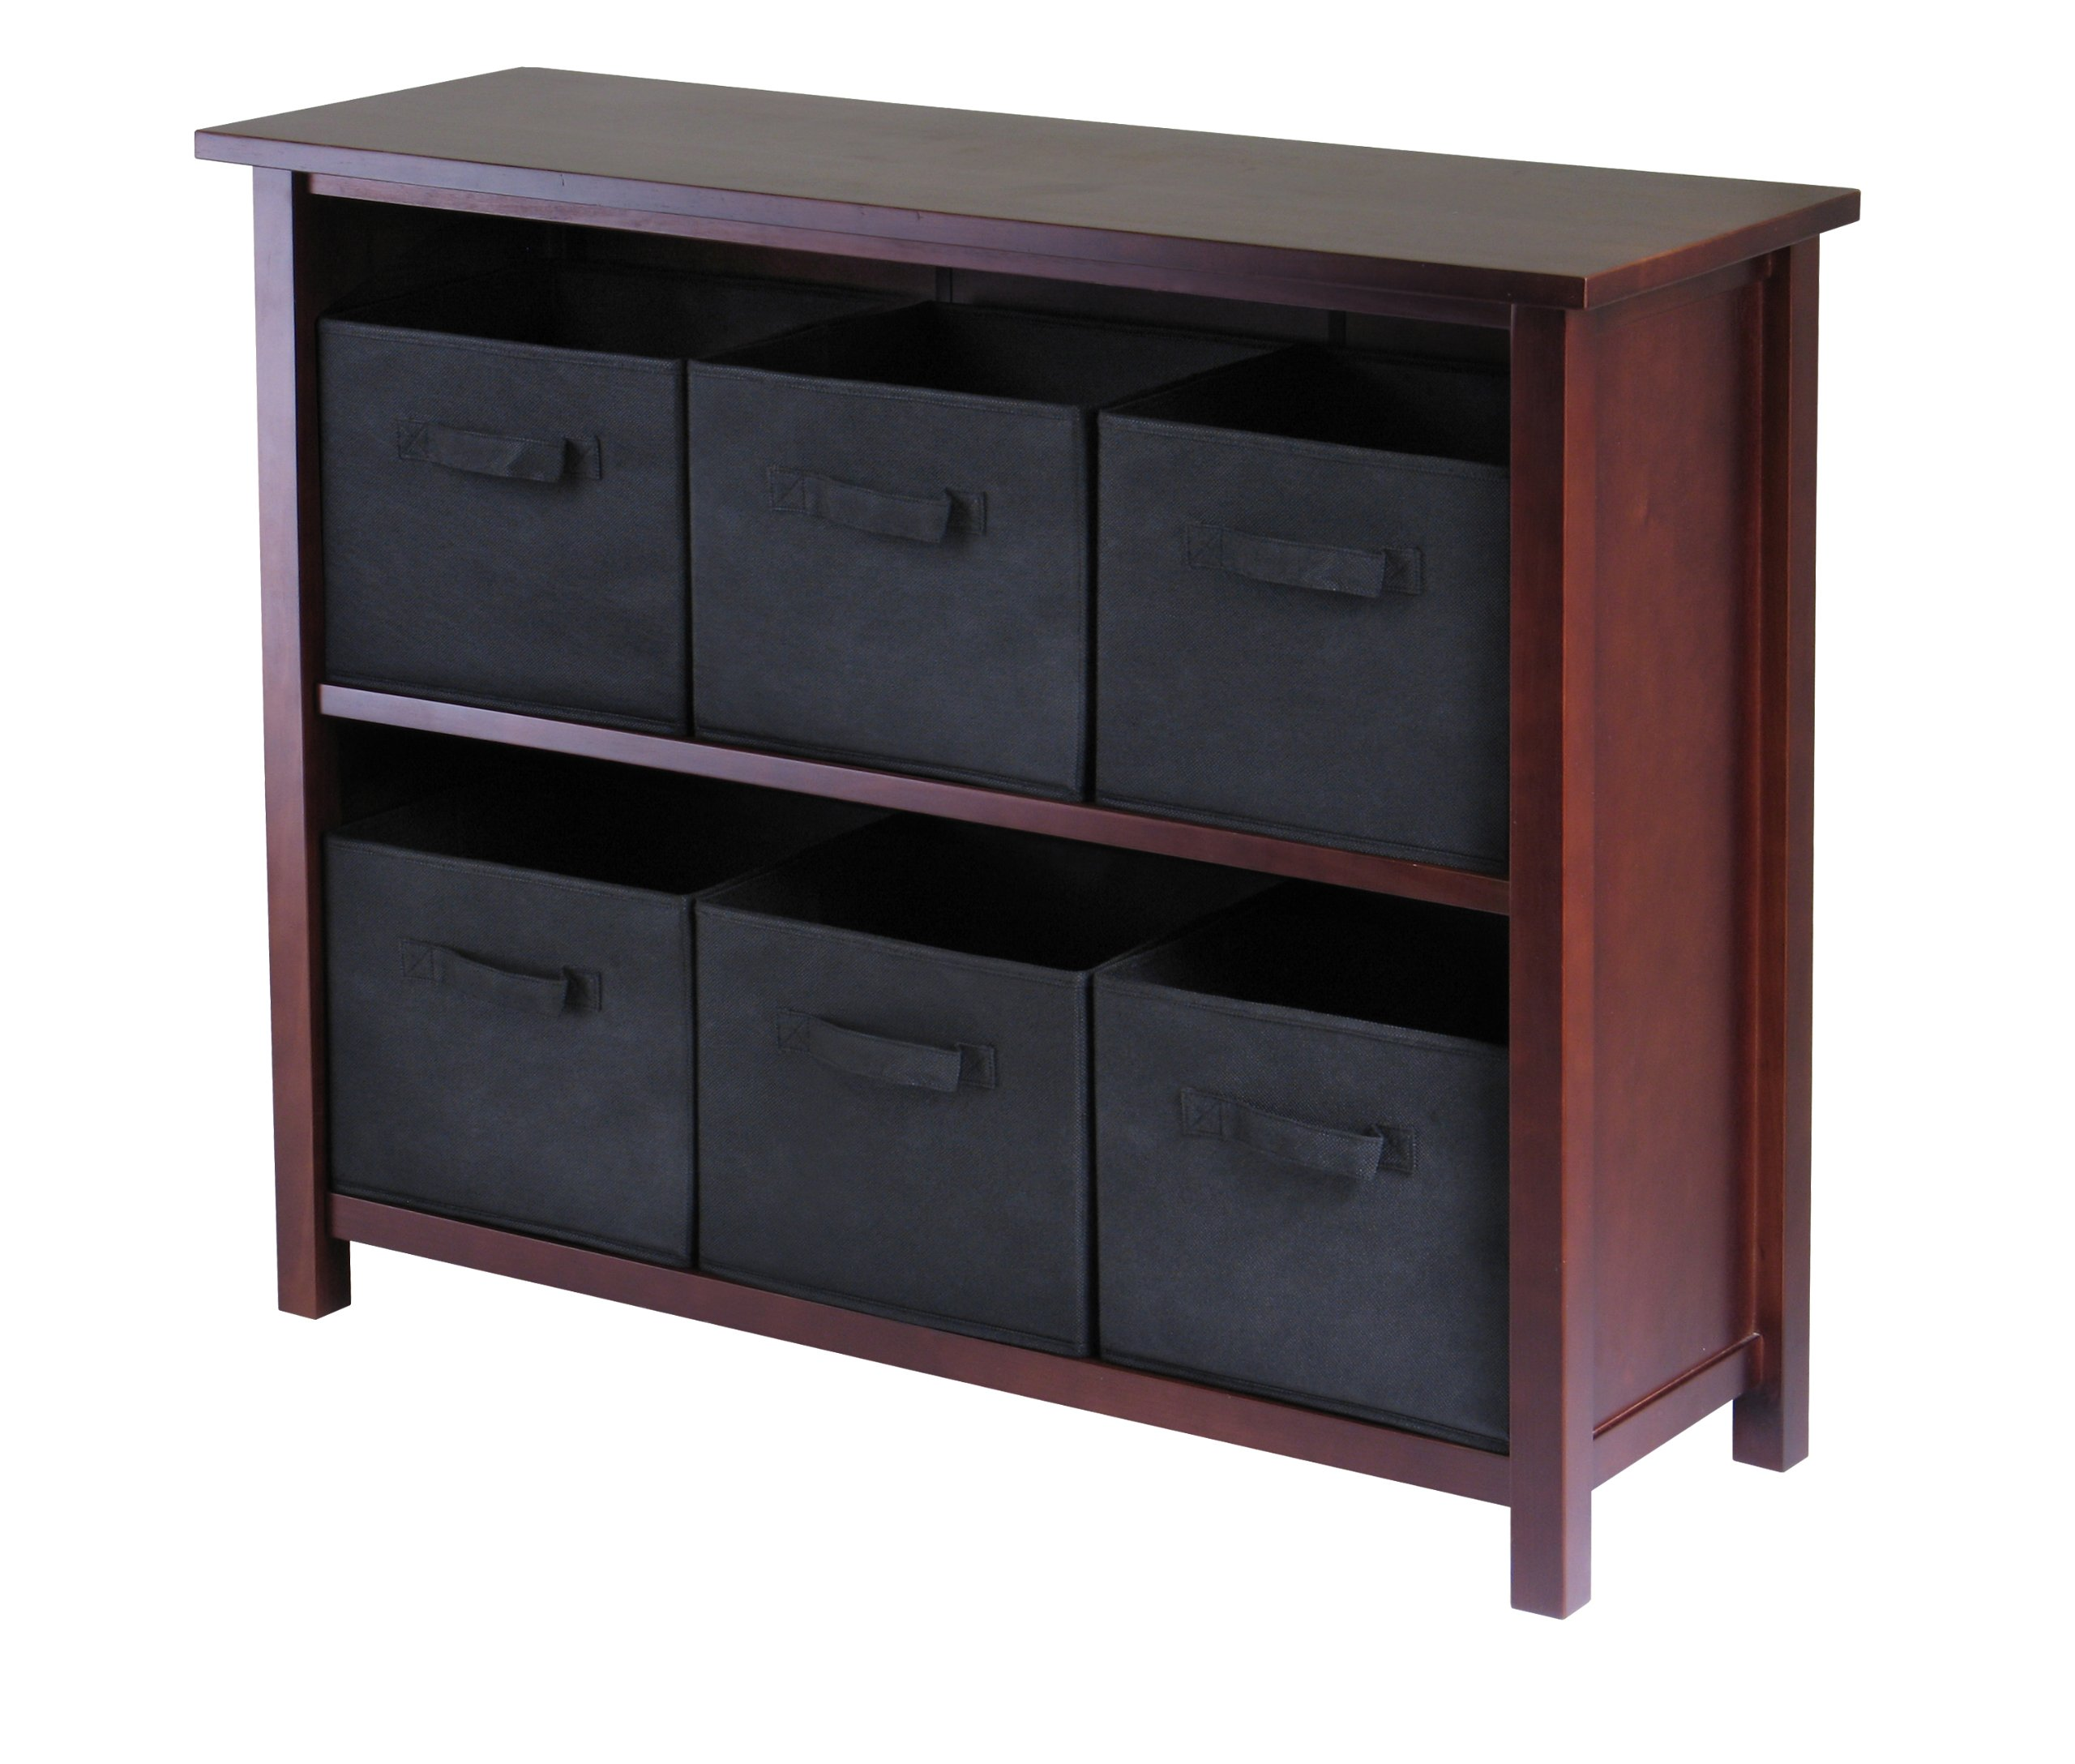 Winsome Wood Verona Wood 3 Tier Open Cabinet with 6 Black Folding Fabric Baskets